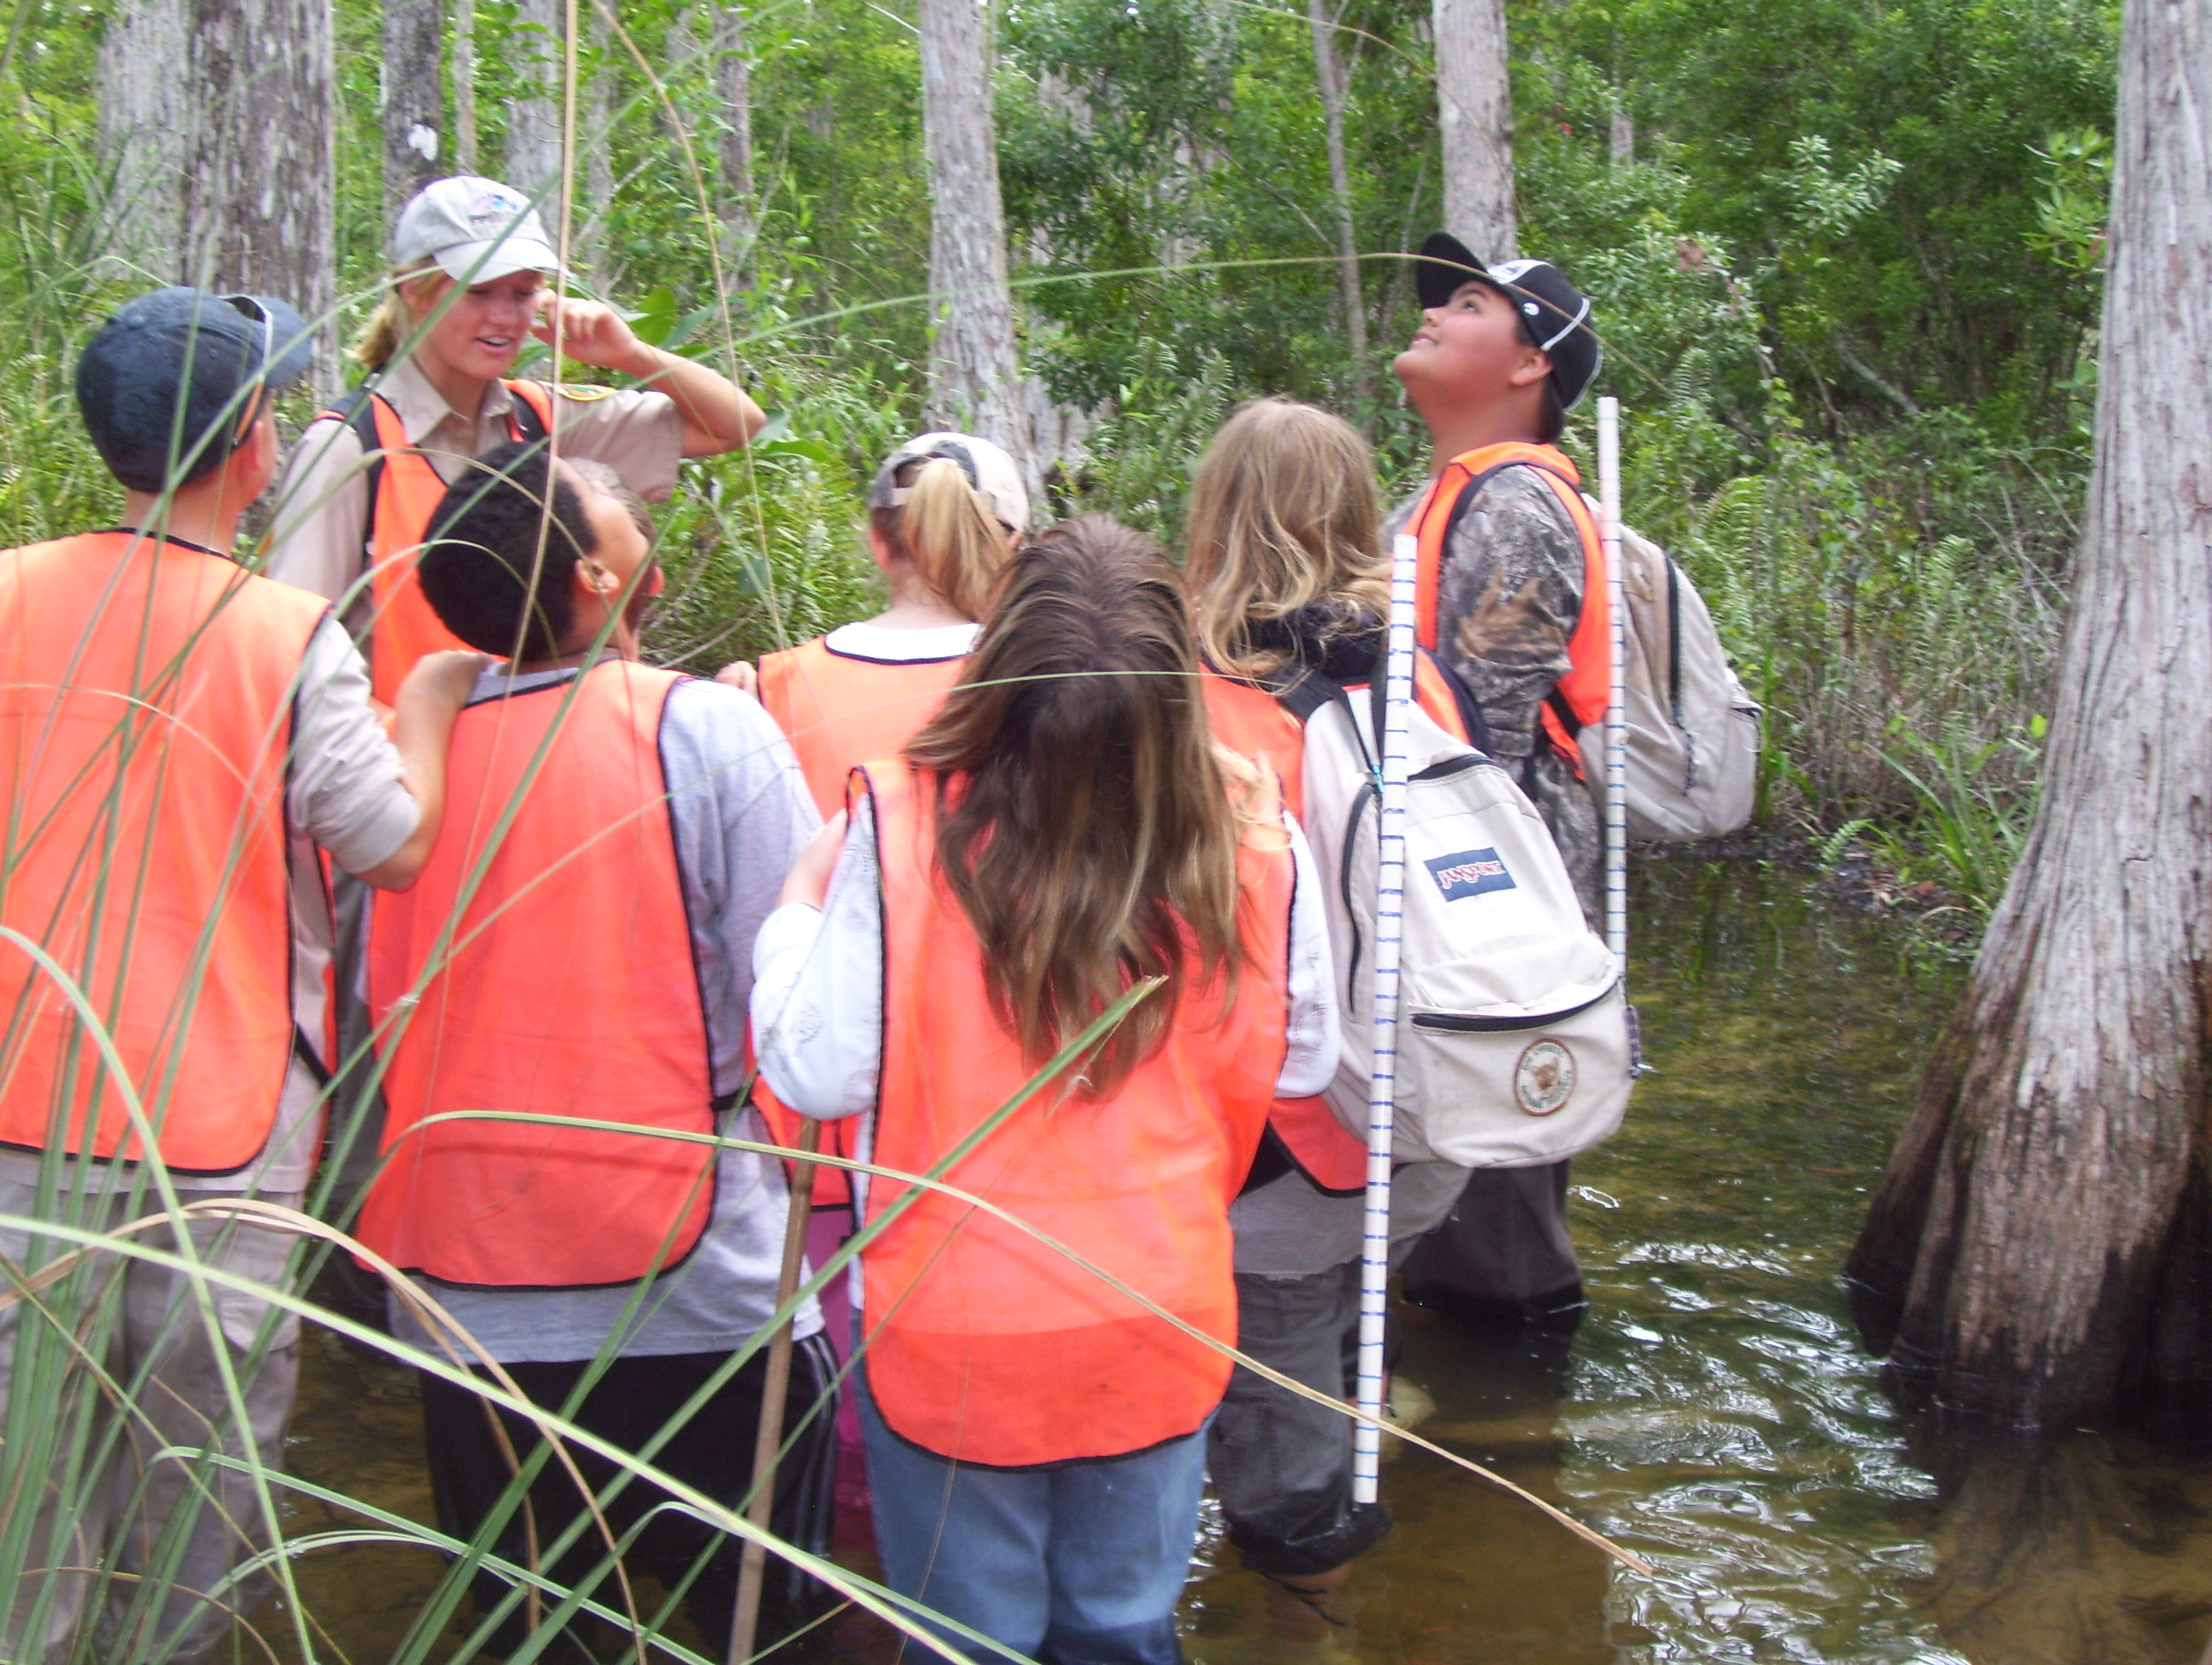 Students explore Big Cypress National Preserve by wading into the swamp.